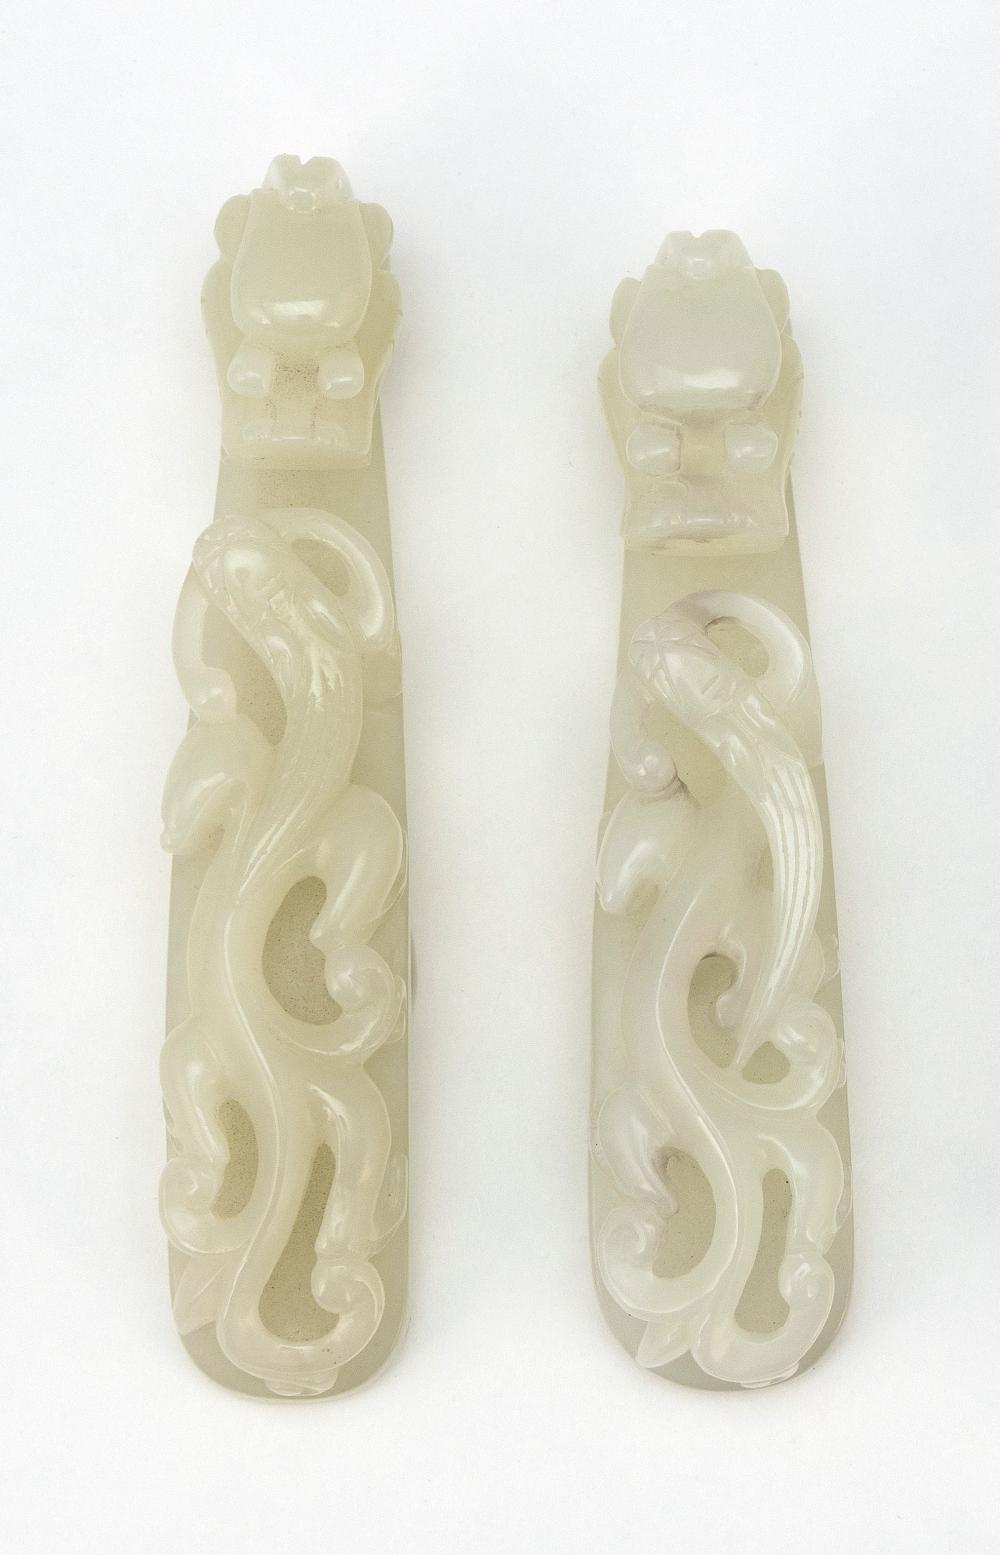 TWO CHINESE PALE CELADON JADE GIRDLE HOOKS Both carved with raised qilong dragons along the shafts and dragon's-head-form hooks. Len..